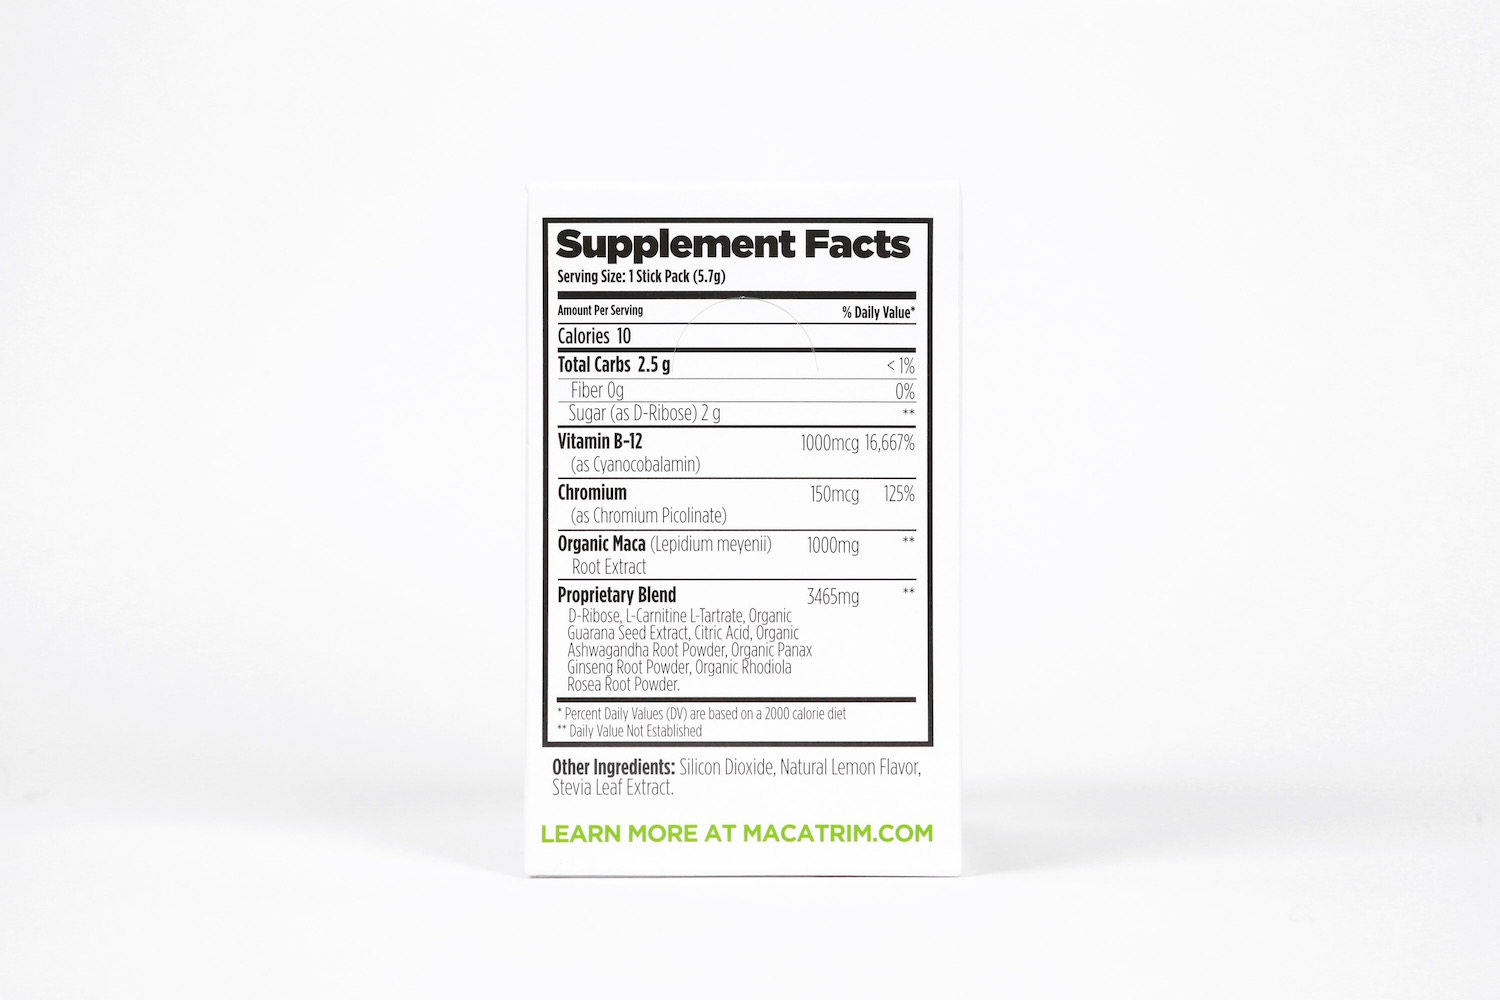 supplement-facts.JPG